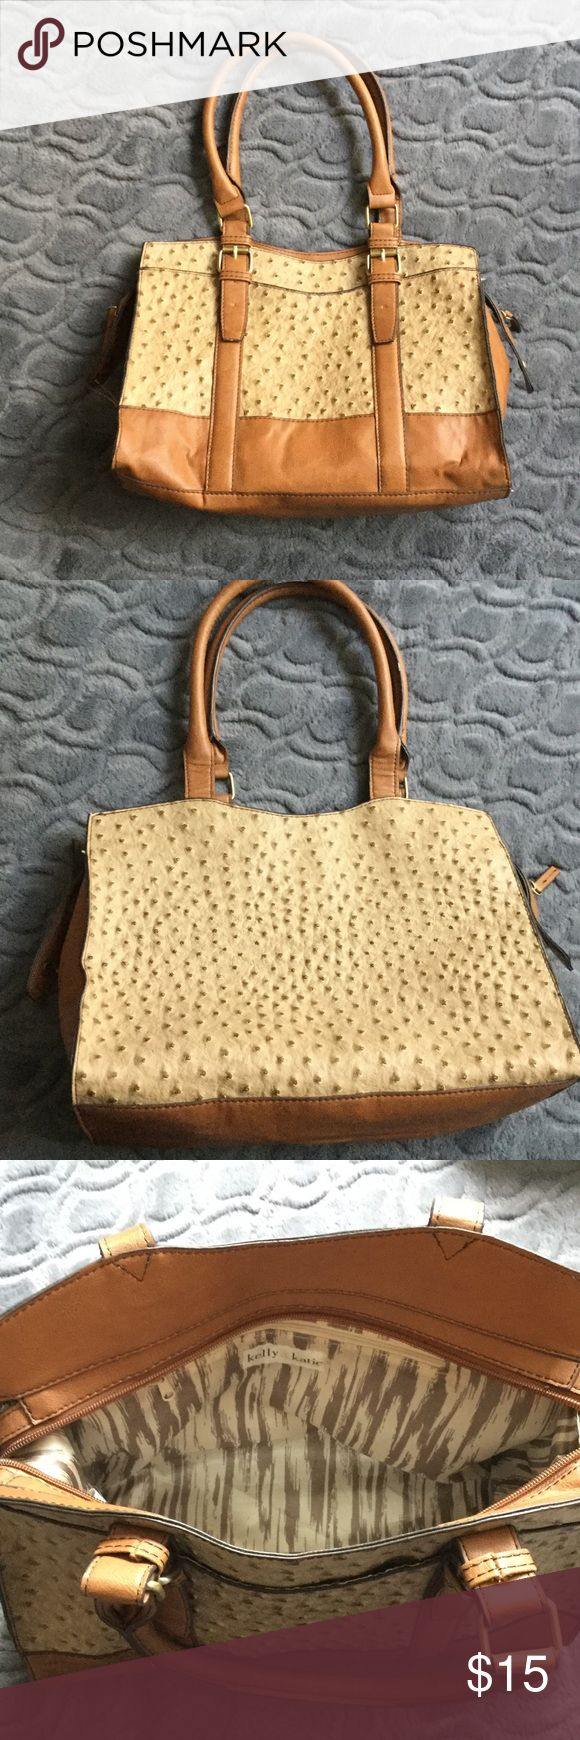 """Kelly and Katie brown and tan textured purse Kelly and Katie brown and tan textured purse.13"""" wide, 10"""" high. Ends of zipper snap to side of purse. Preowned Kelly & Katie Bags Shoulder Bags"""